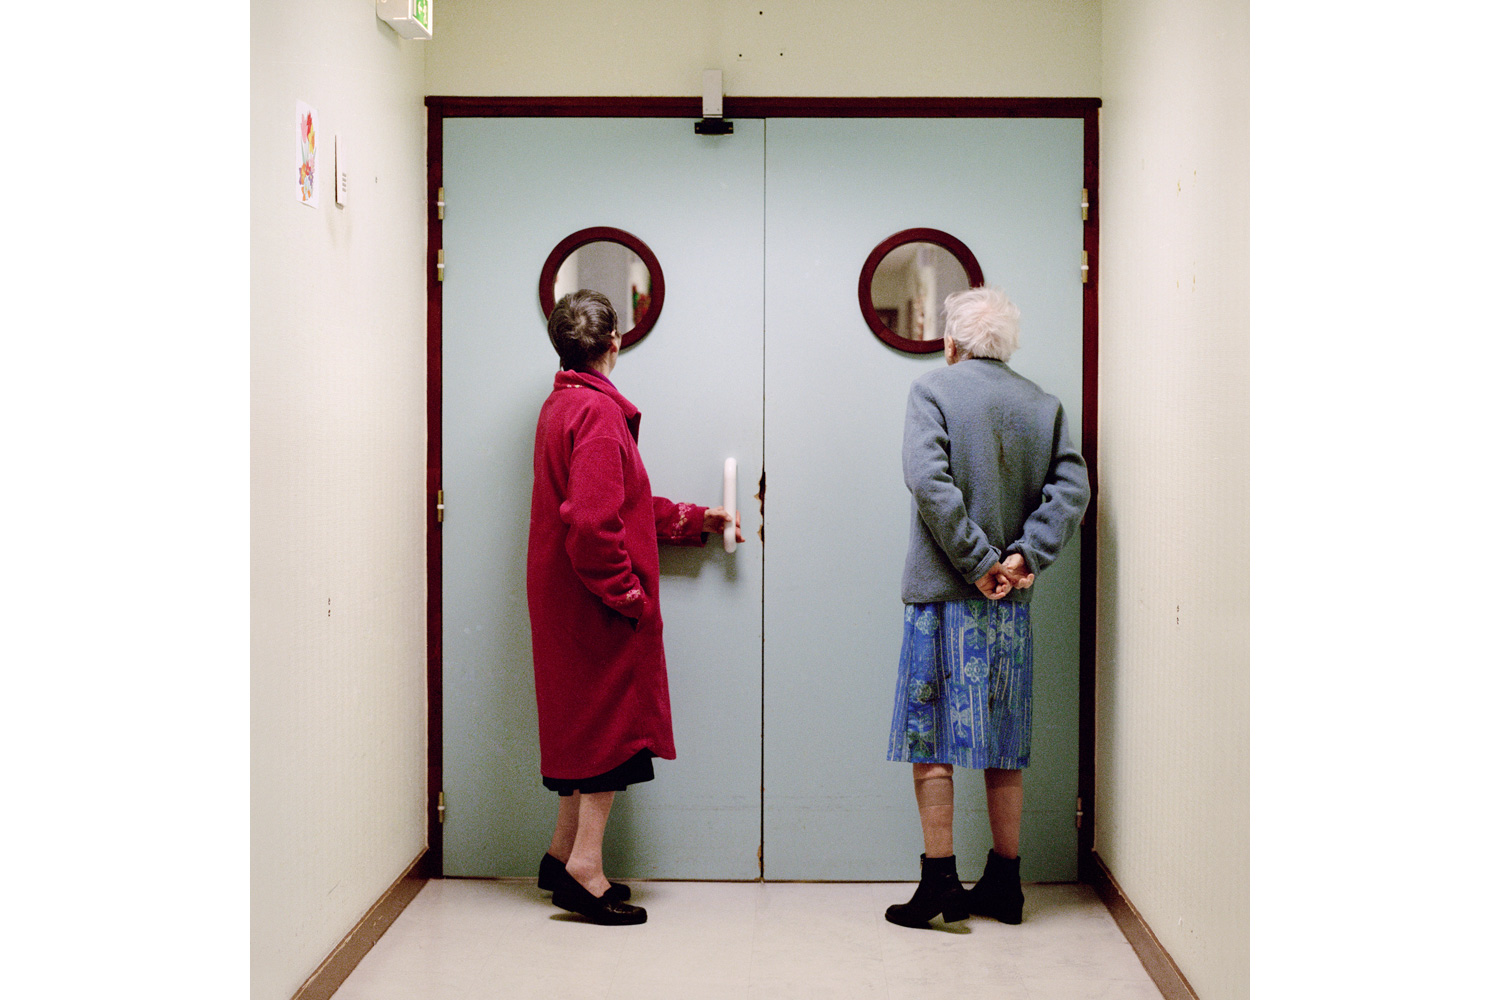 Two residents stand in front of the ward's locked exit door